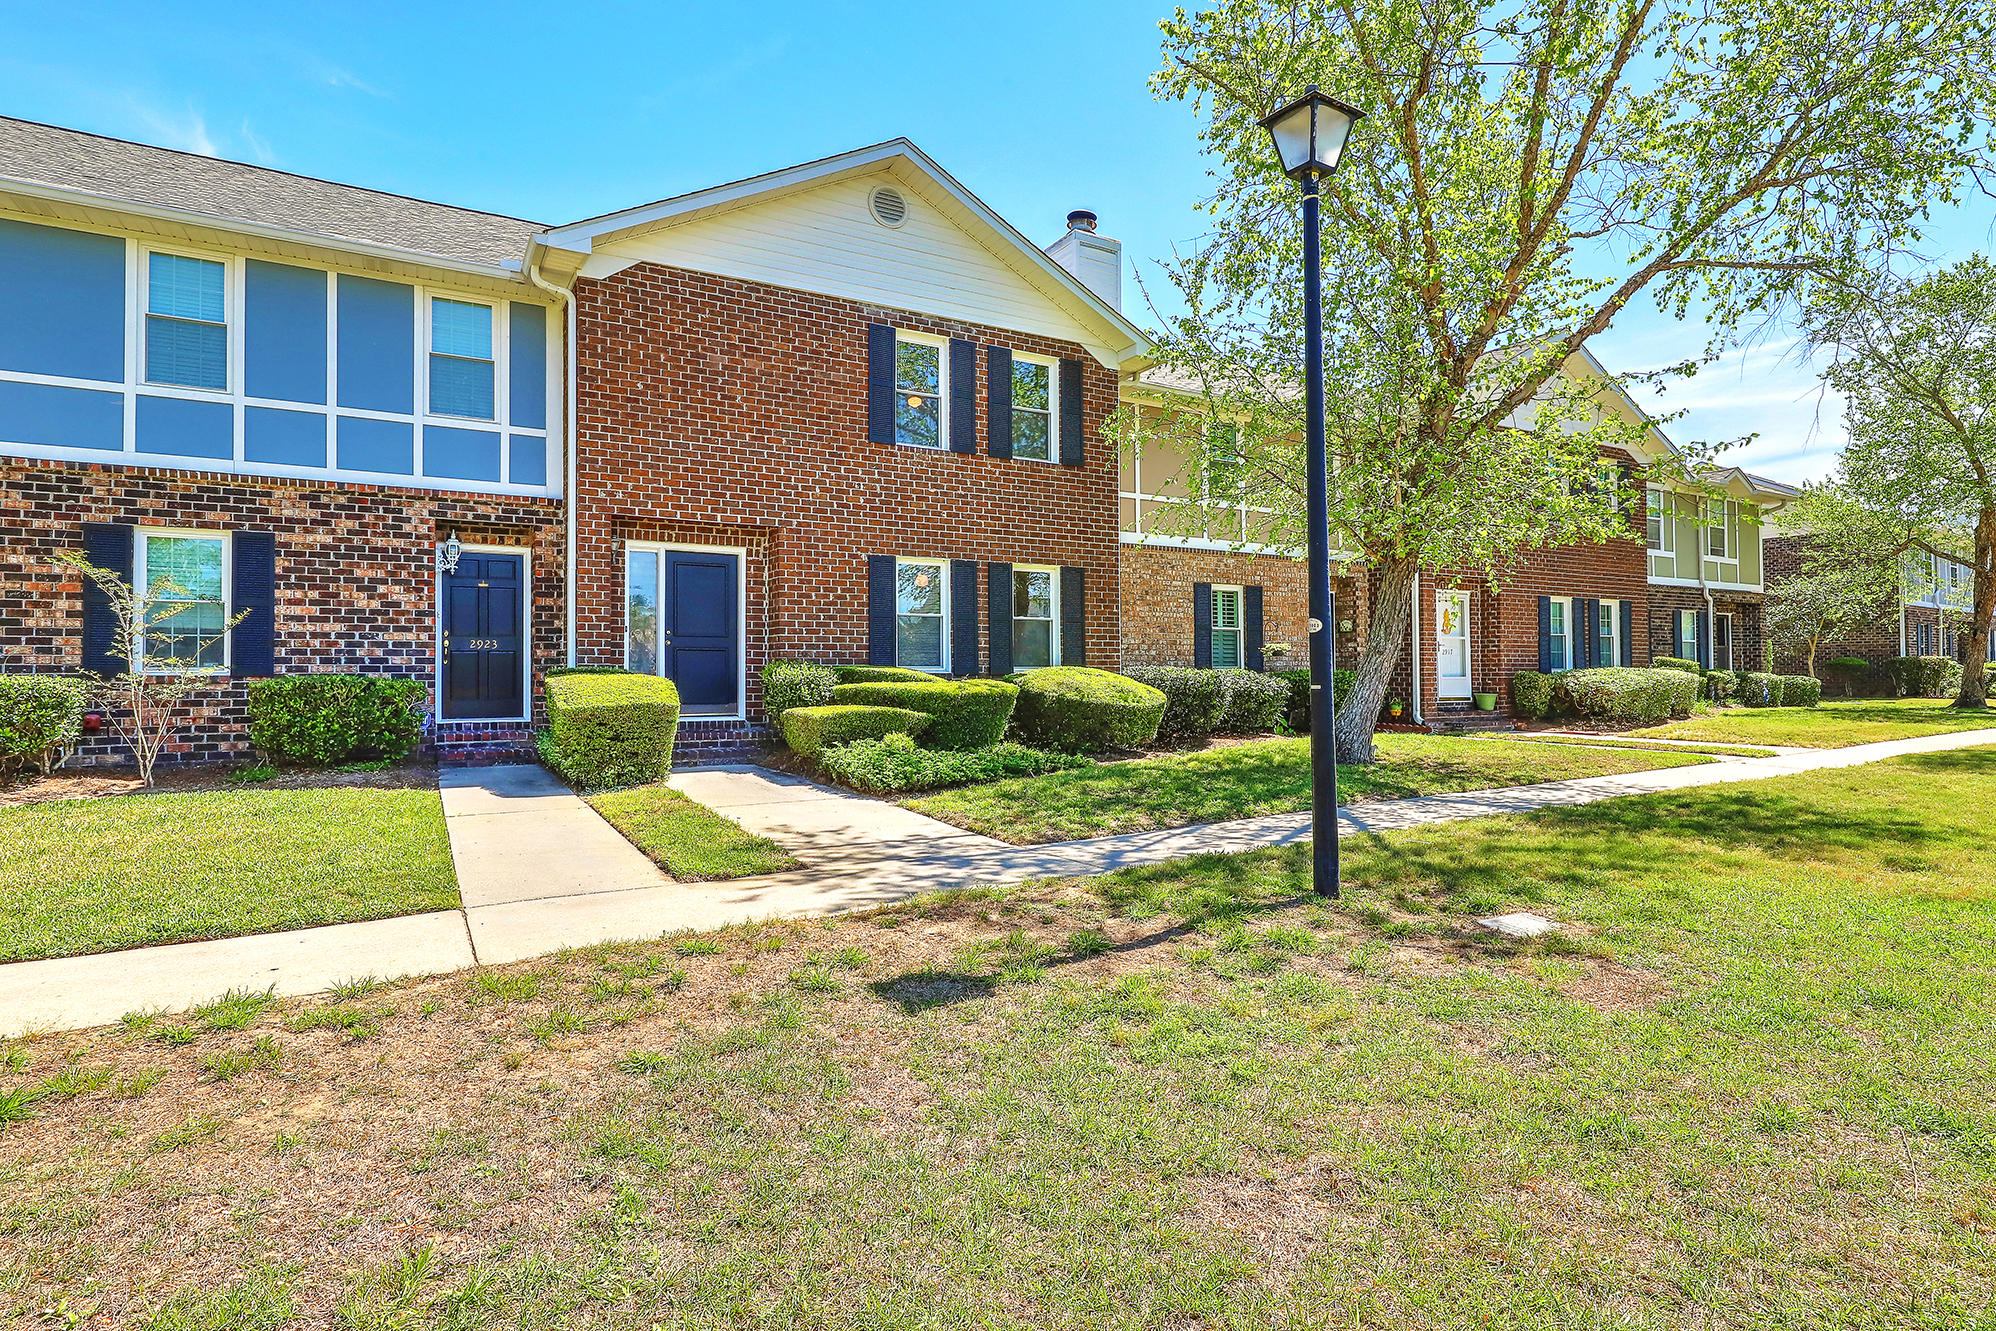 Old Towne Villas Homes For Sale - 2921 Cathedral, Charleston, SC - 38